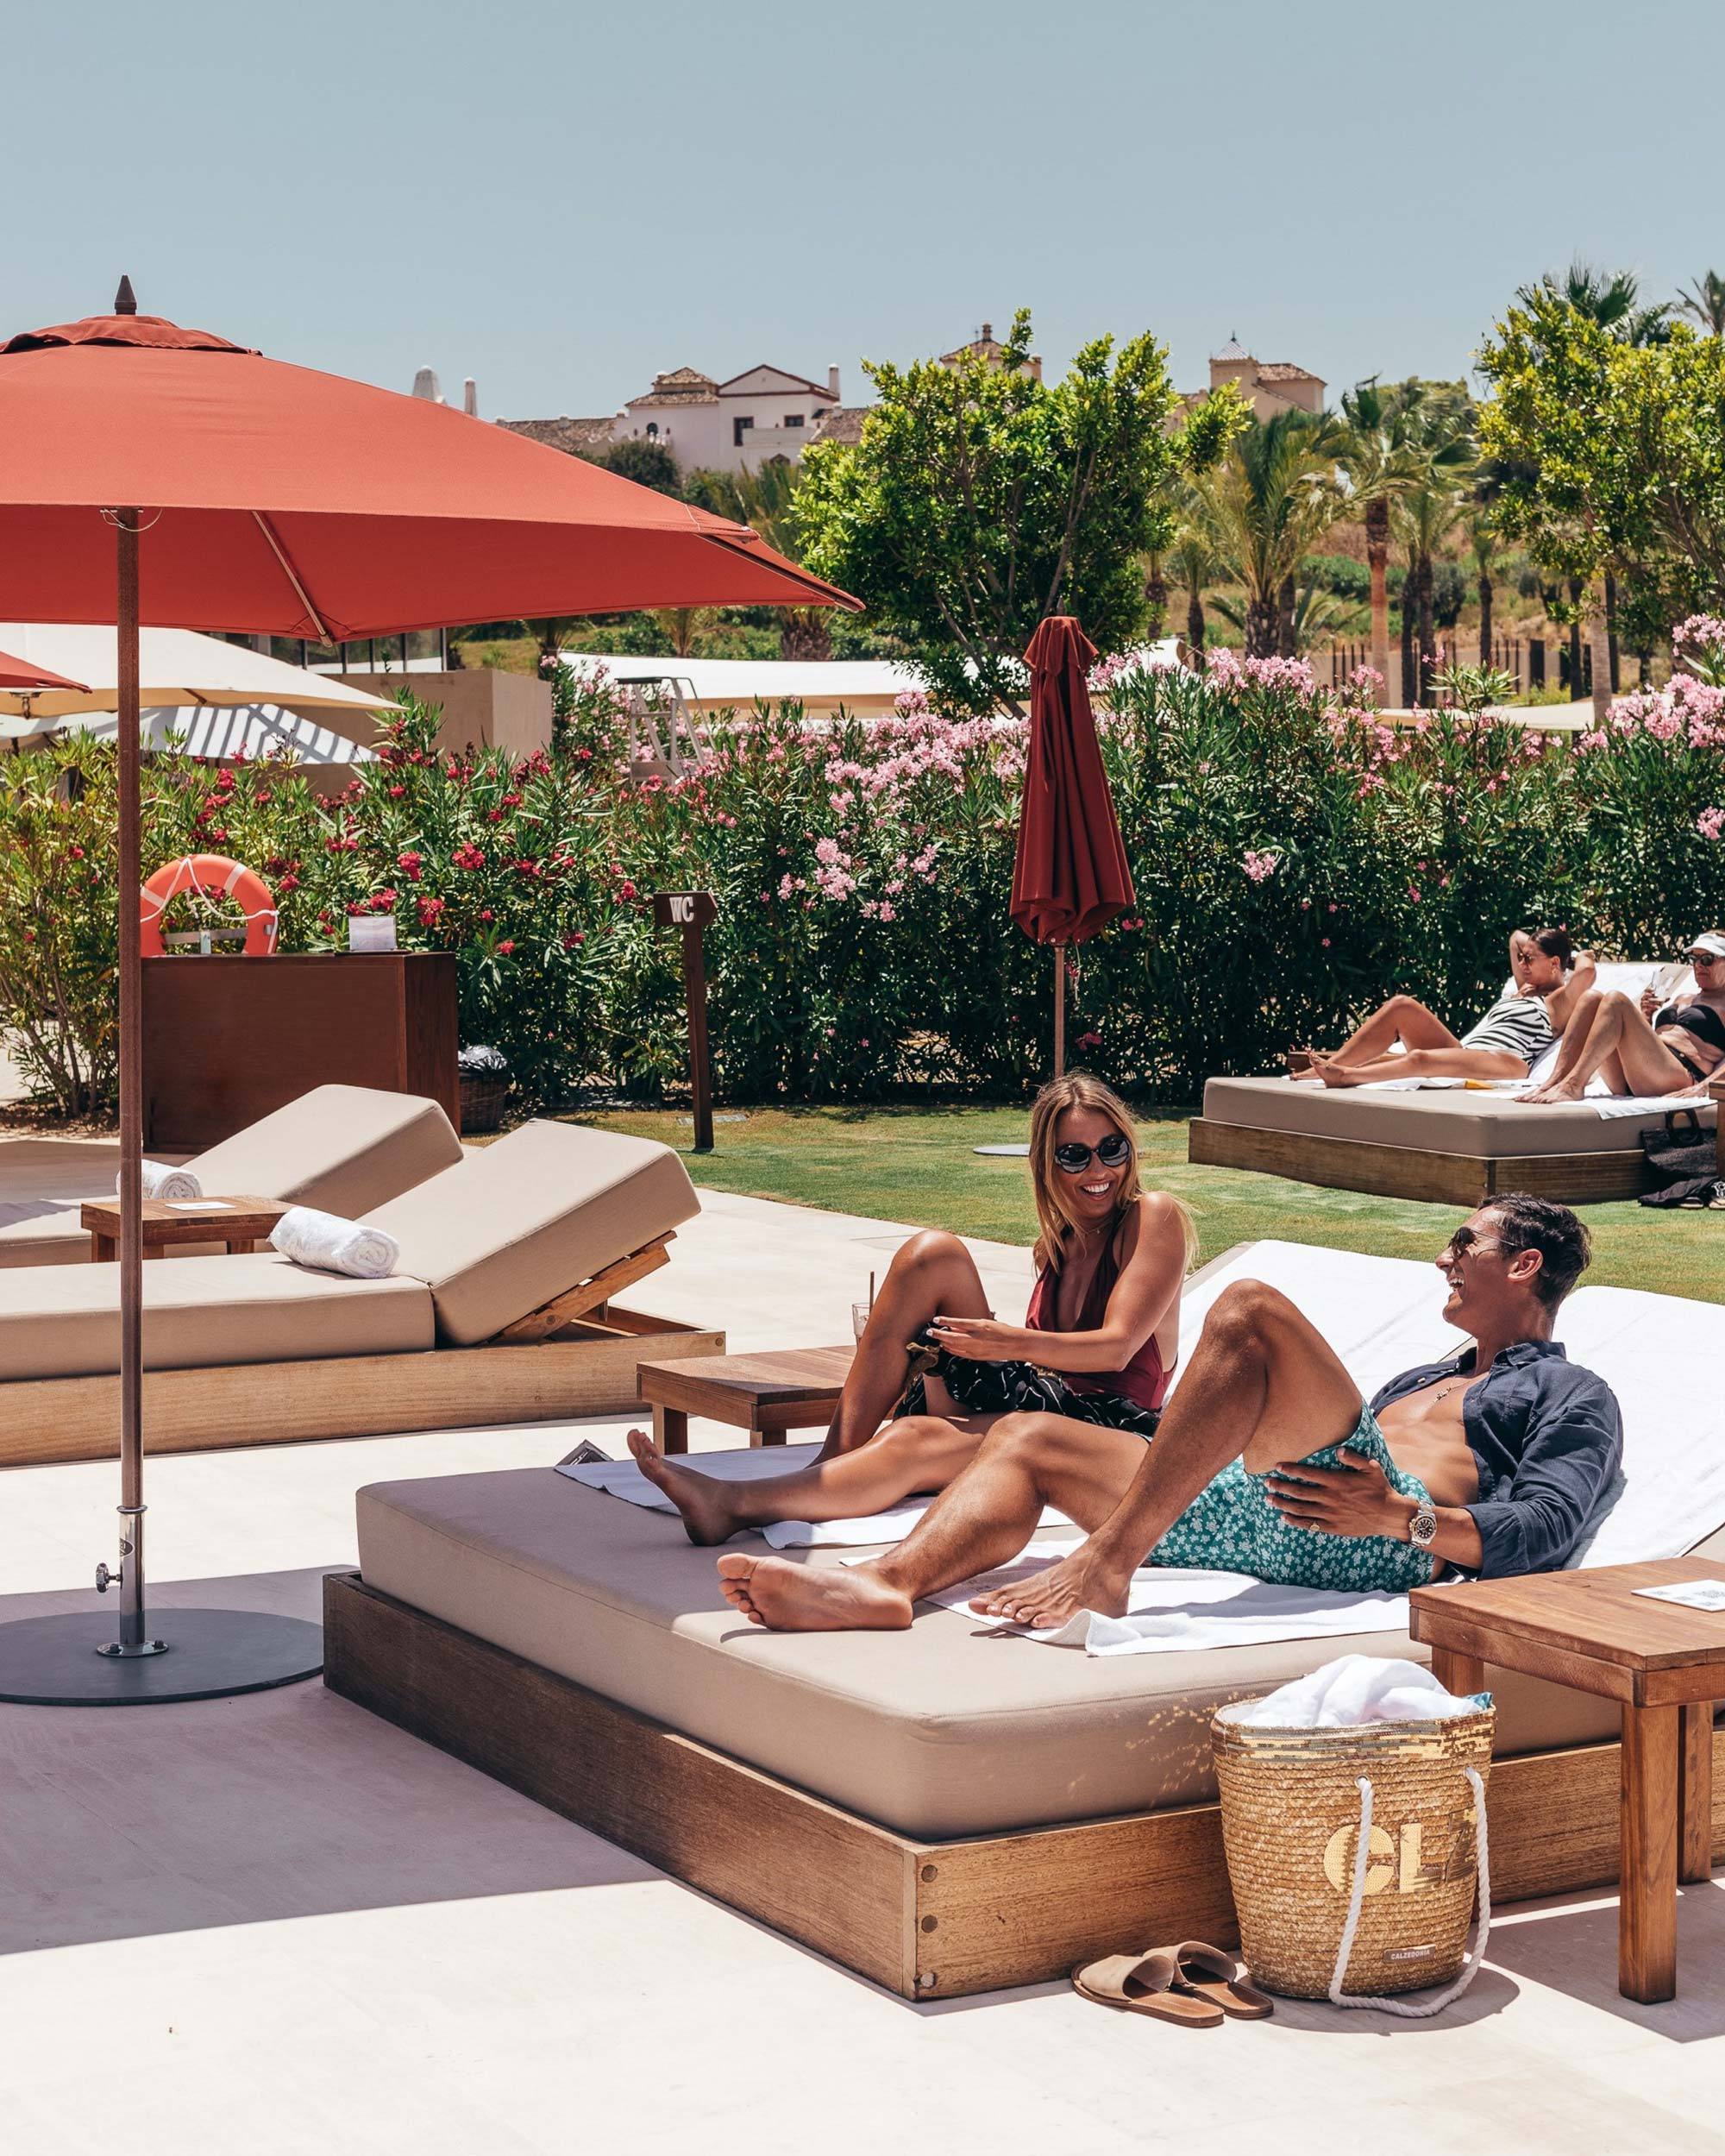 complete experience the Beach Sotogrande